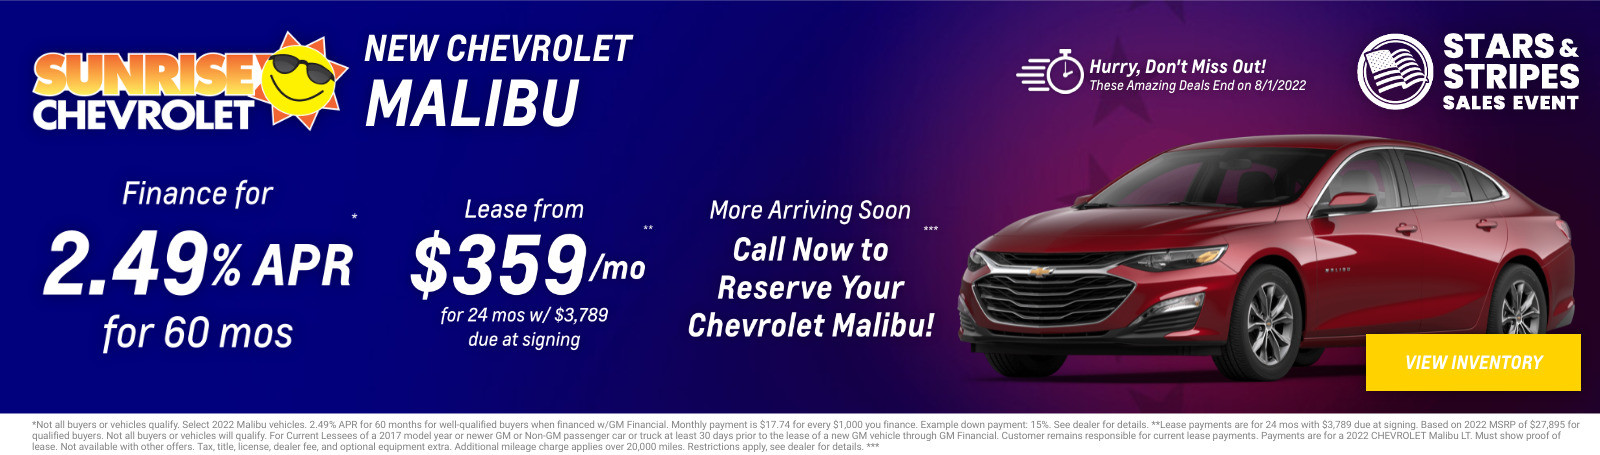 New Chevrolet Malibu Current Deals and Offers in Chicago, IL